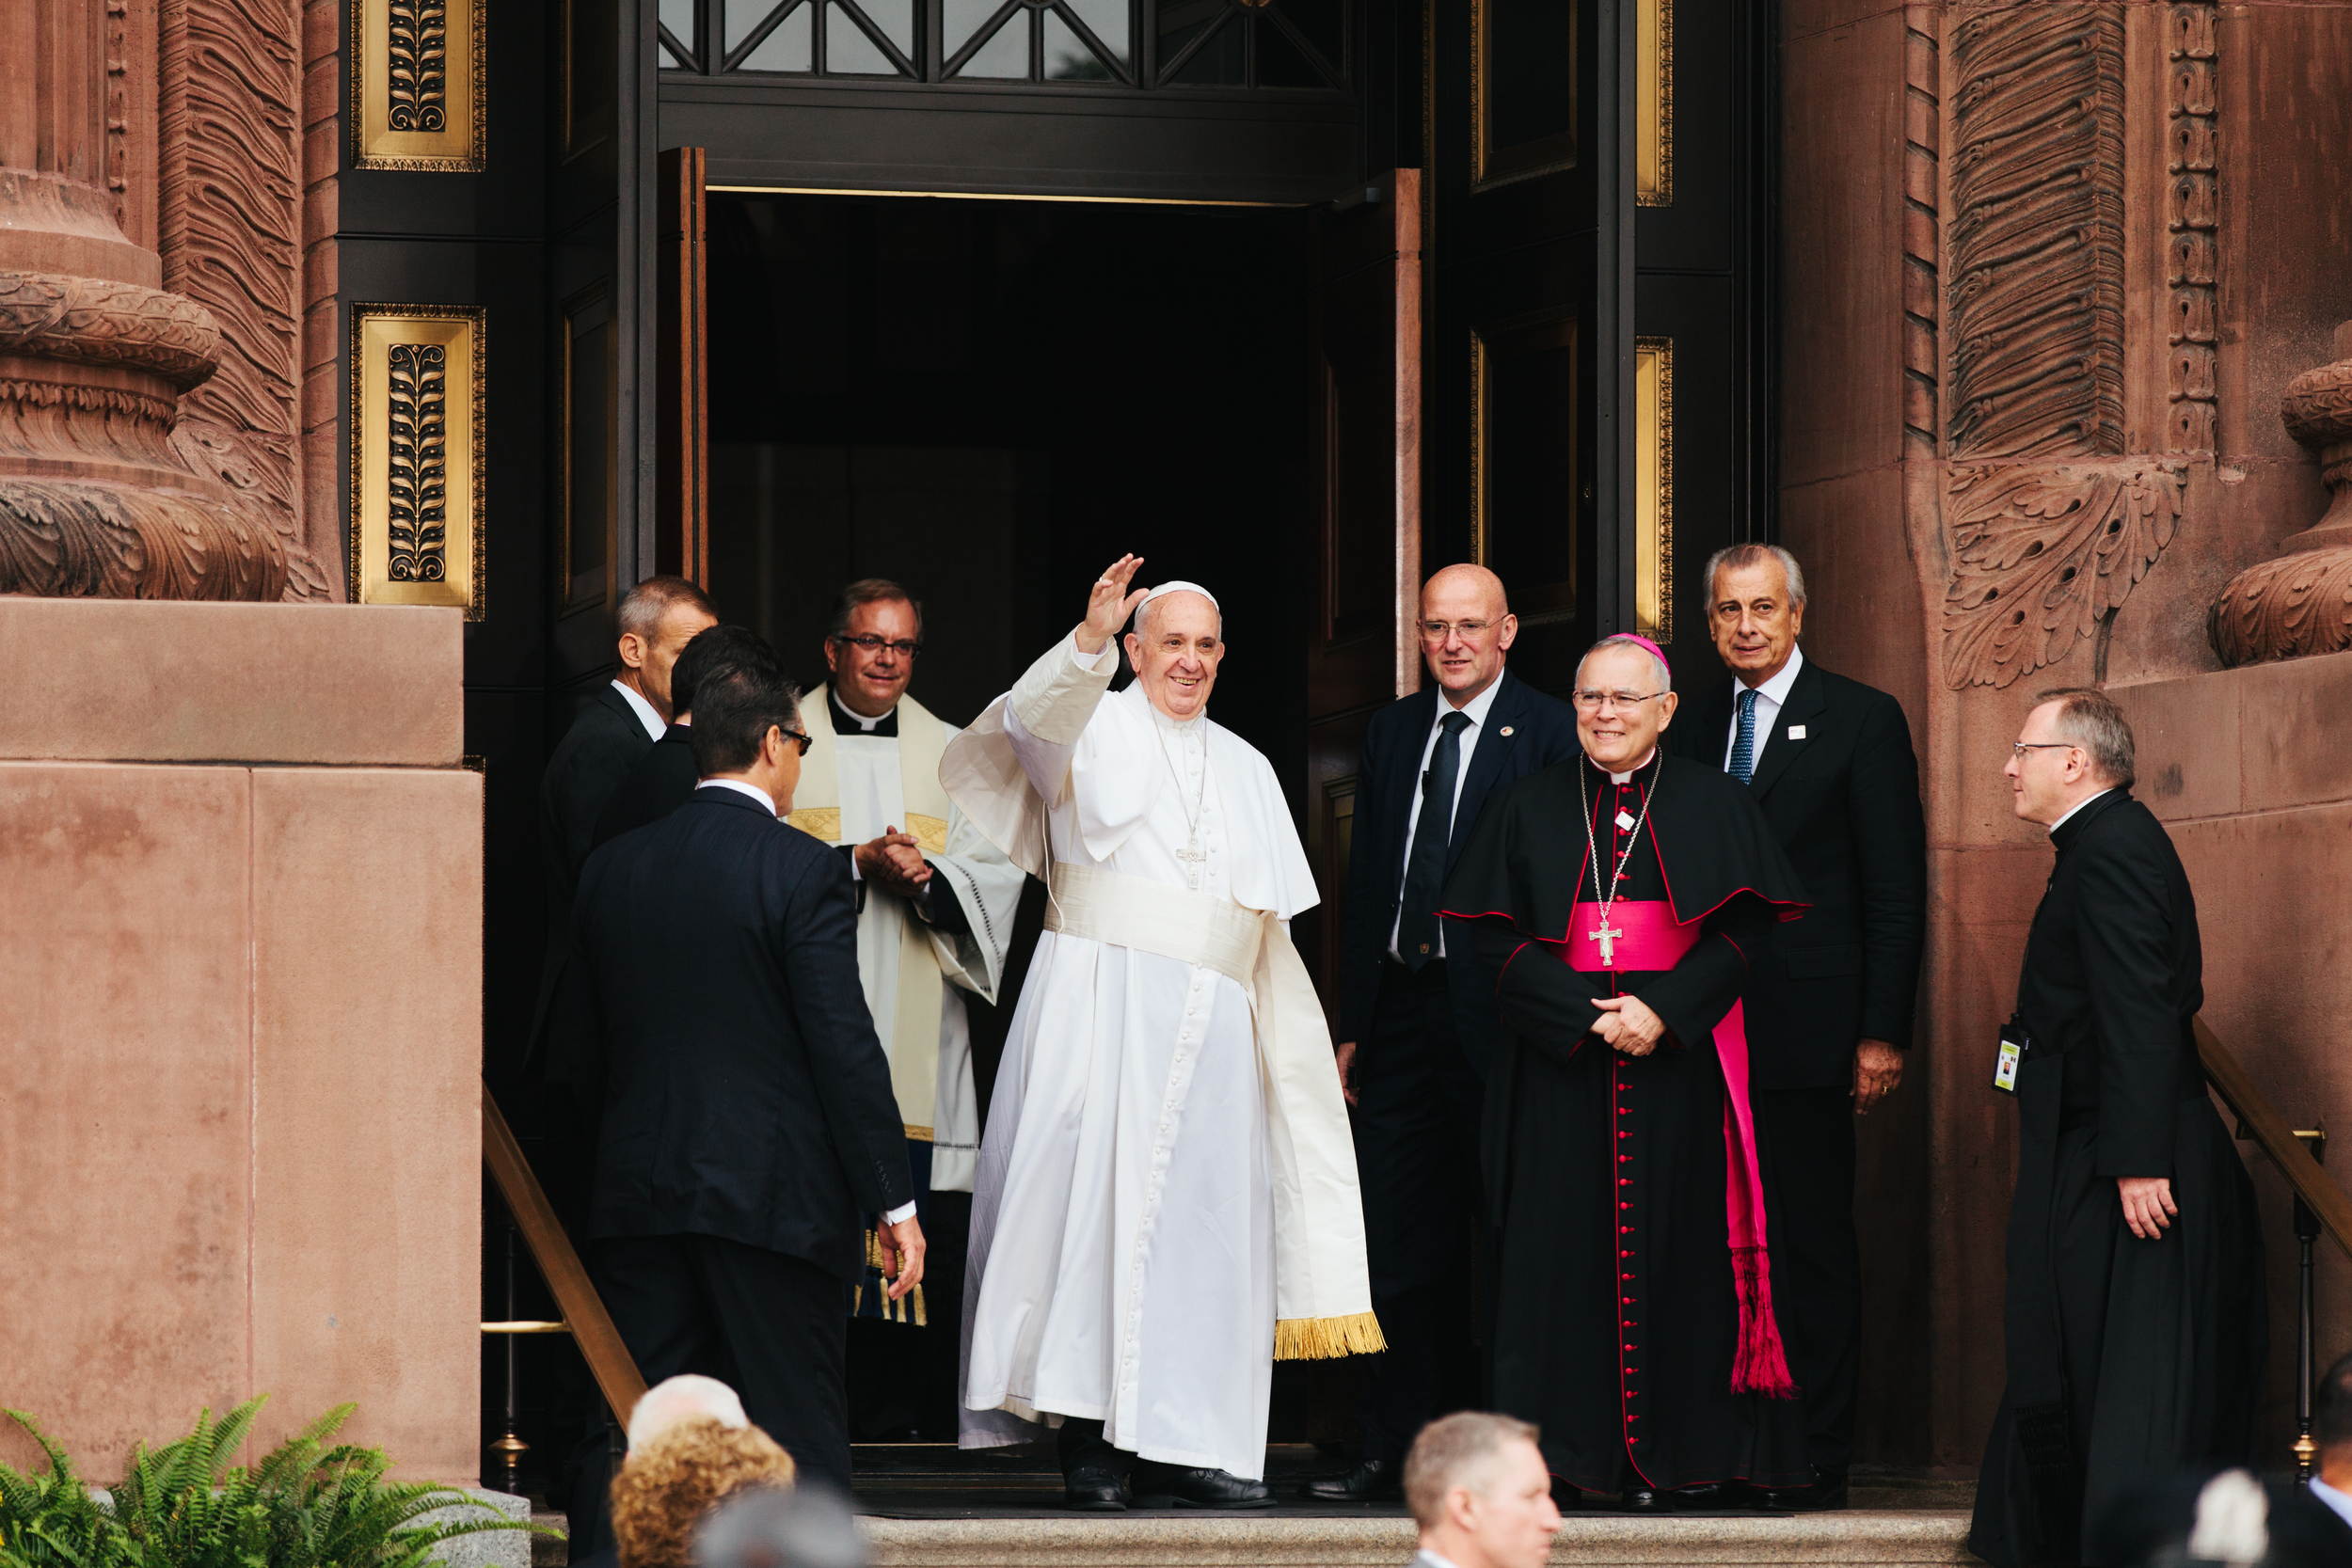 Pope Francis in Philadelphia at the Basilica